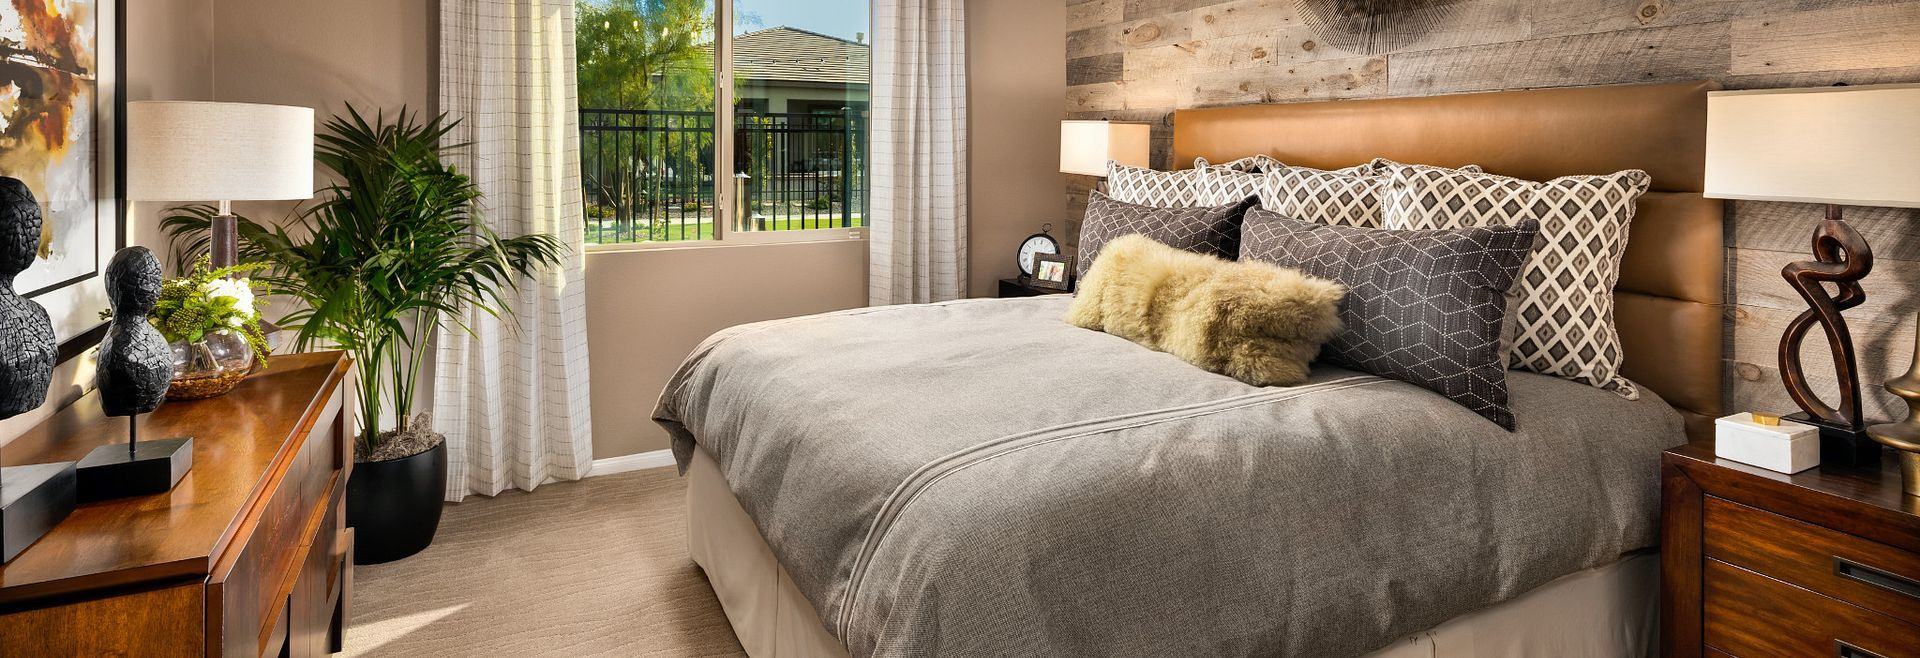 Bedroom featured in the Muros By Shea Homes - Trilogy in Phoenix-Mesa, AZ